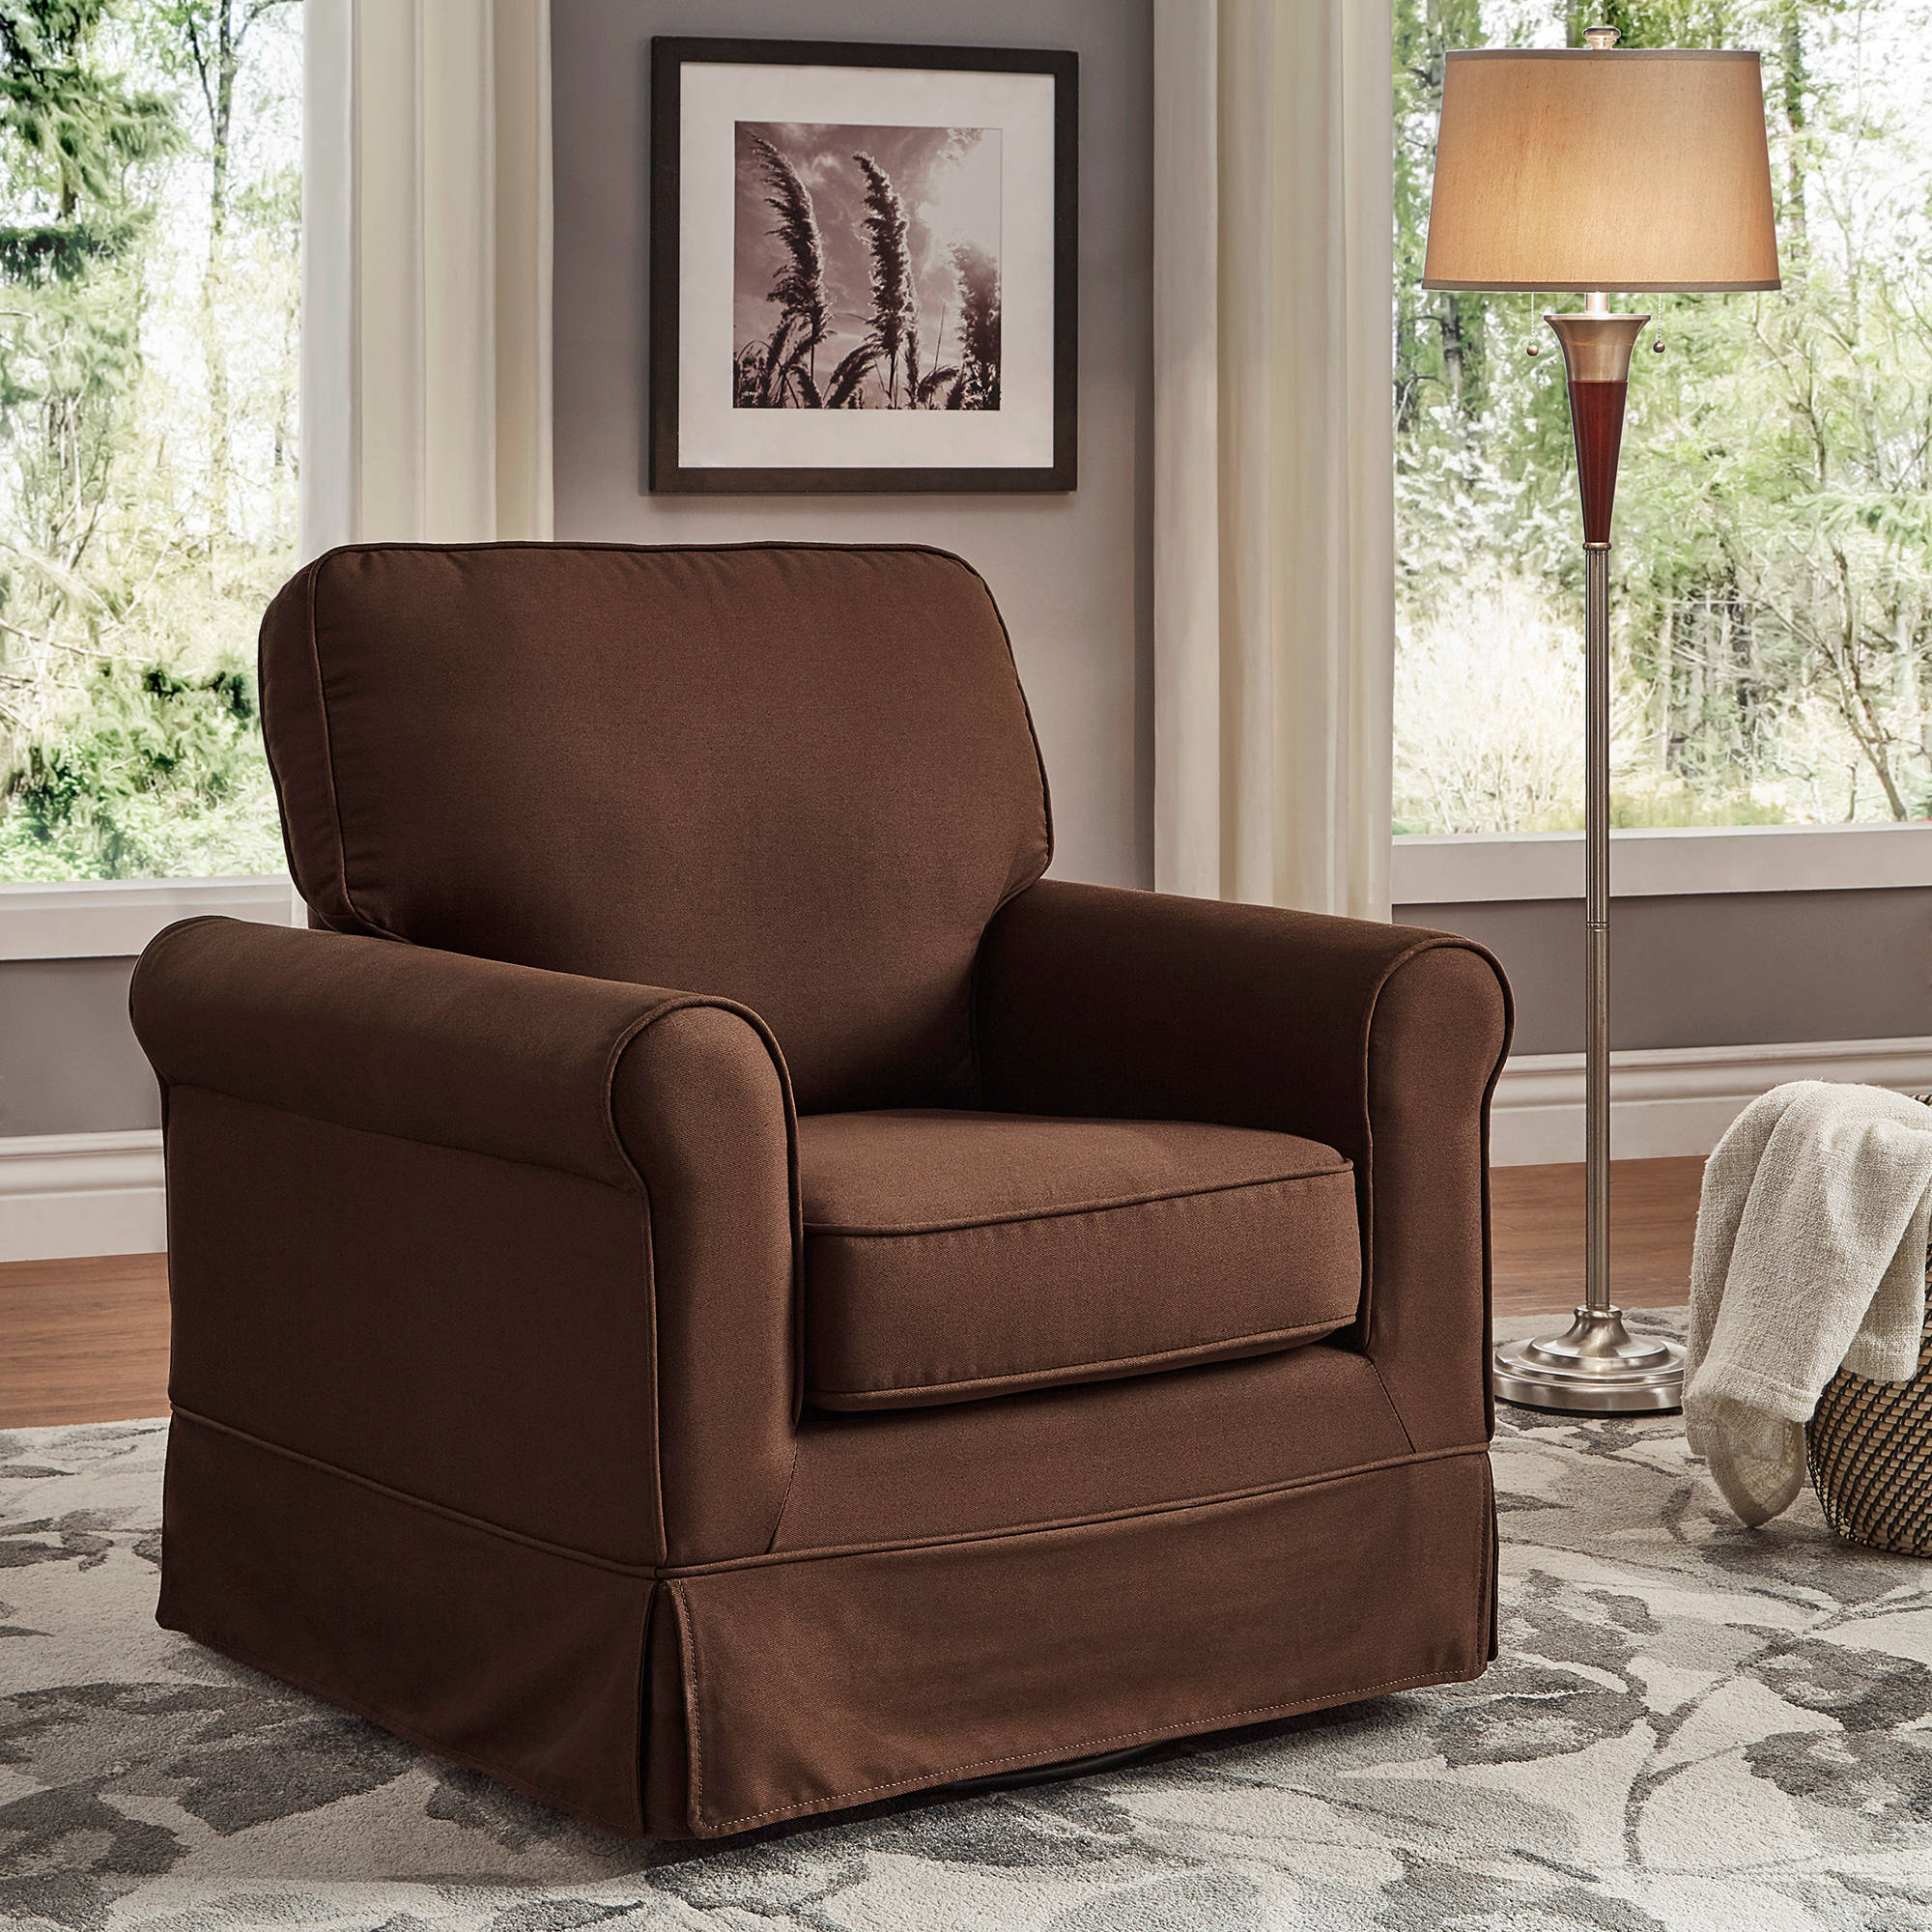 Rocking Accent Chairs Weston Home Madden Swivel And Rocking Accent Chair Multiple Colors